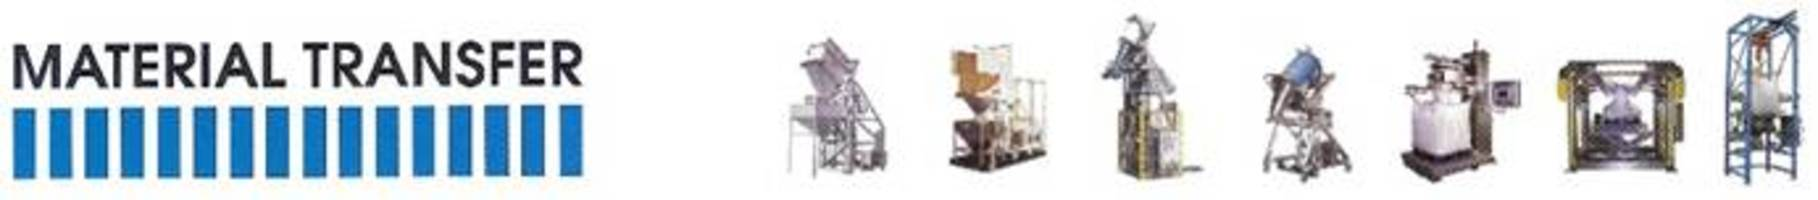 Bulk Bag Discharger features discharge hopper with bolt-on top cover.